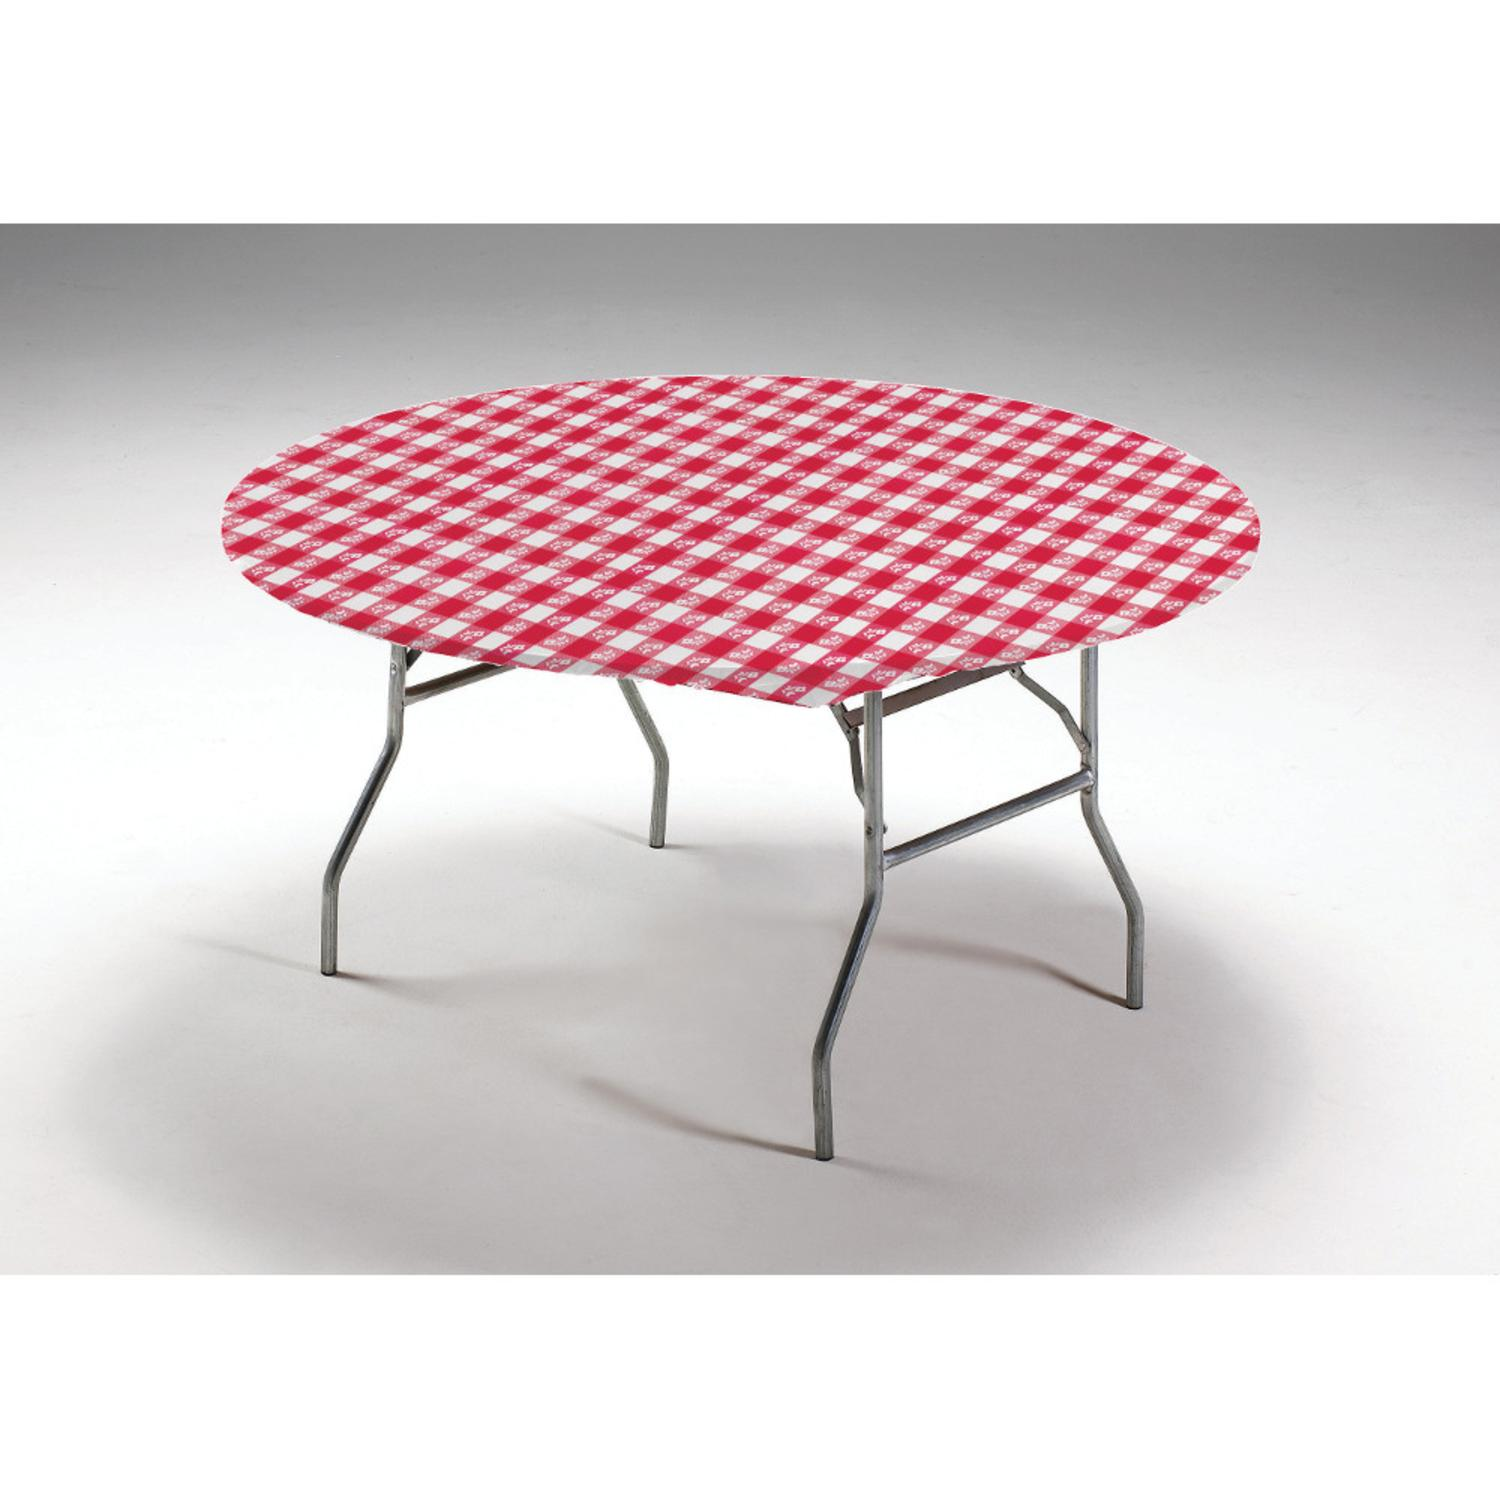 Club Pack of 12 Red and White Gingham Disposable Round Plastic Banquet Party Table Covers 60